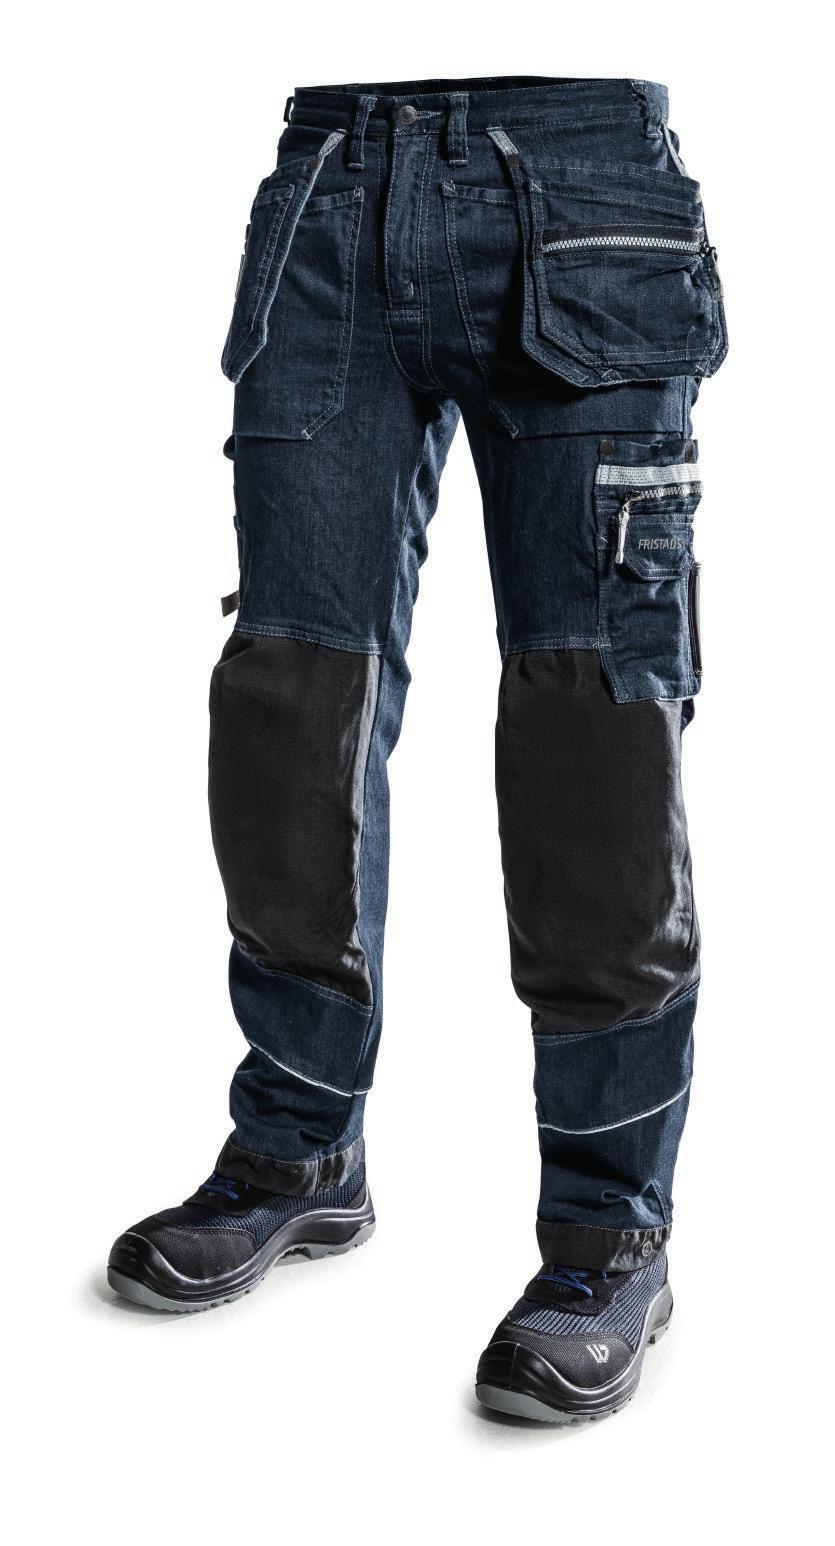 FULL STRETCH DENIM TROUSERS WITH HIGH DURABILITY 2 CORDURA reinforced back pockets, one with flap and velcro fastening Pockets reinforced with metal rivets at stress points Hammer loop Loose-hanging